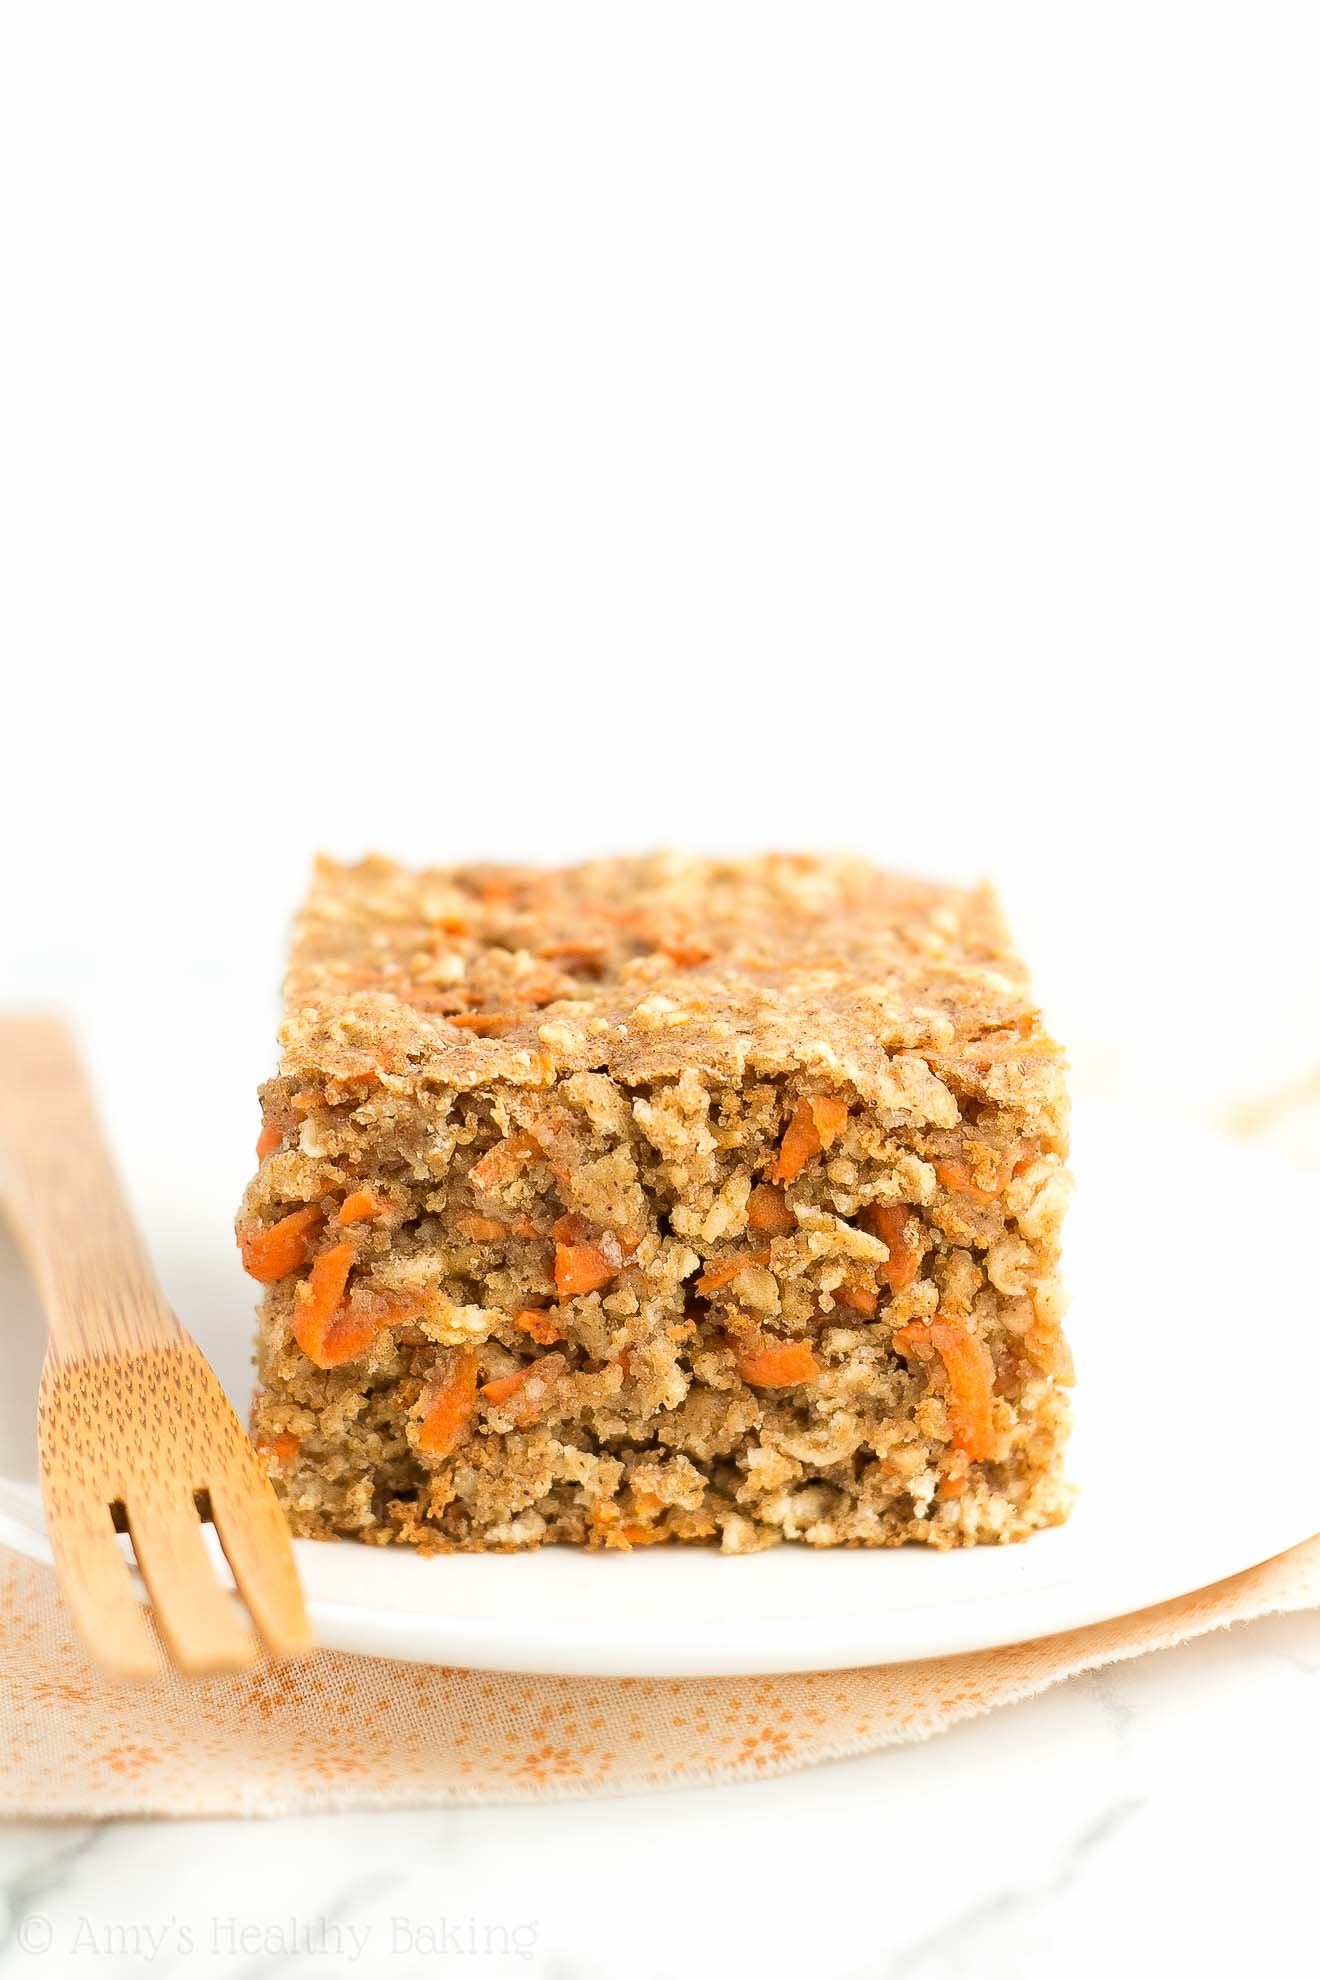 A plate with a fork and a slice of Healthy Carrot Cake Oatmeal Snack Cake